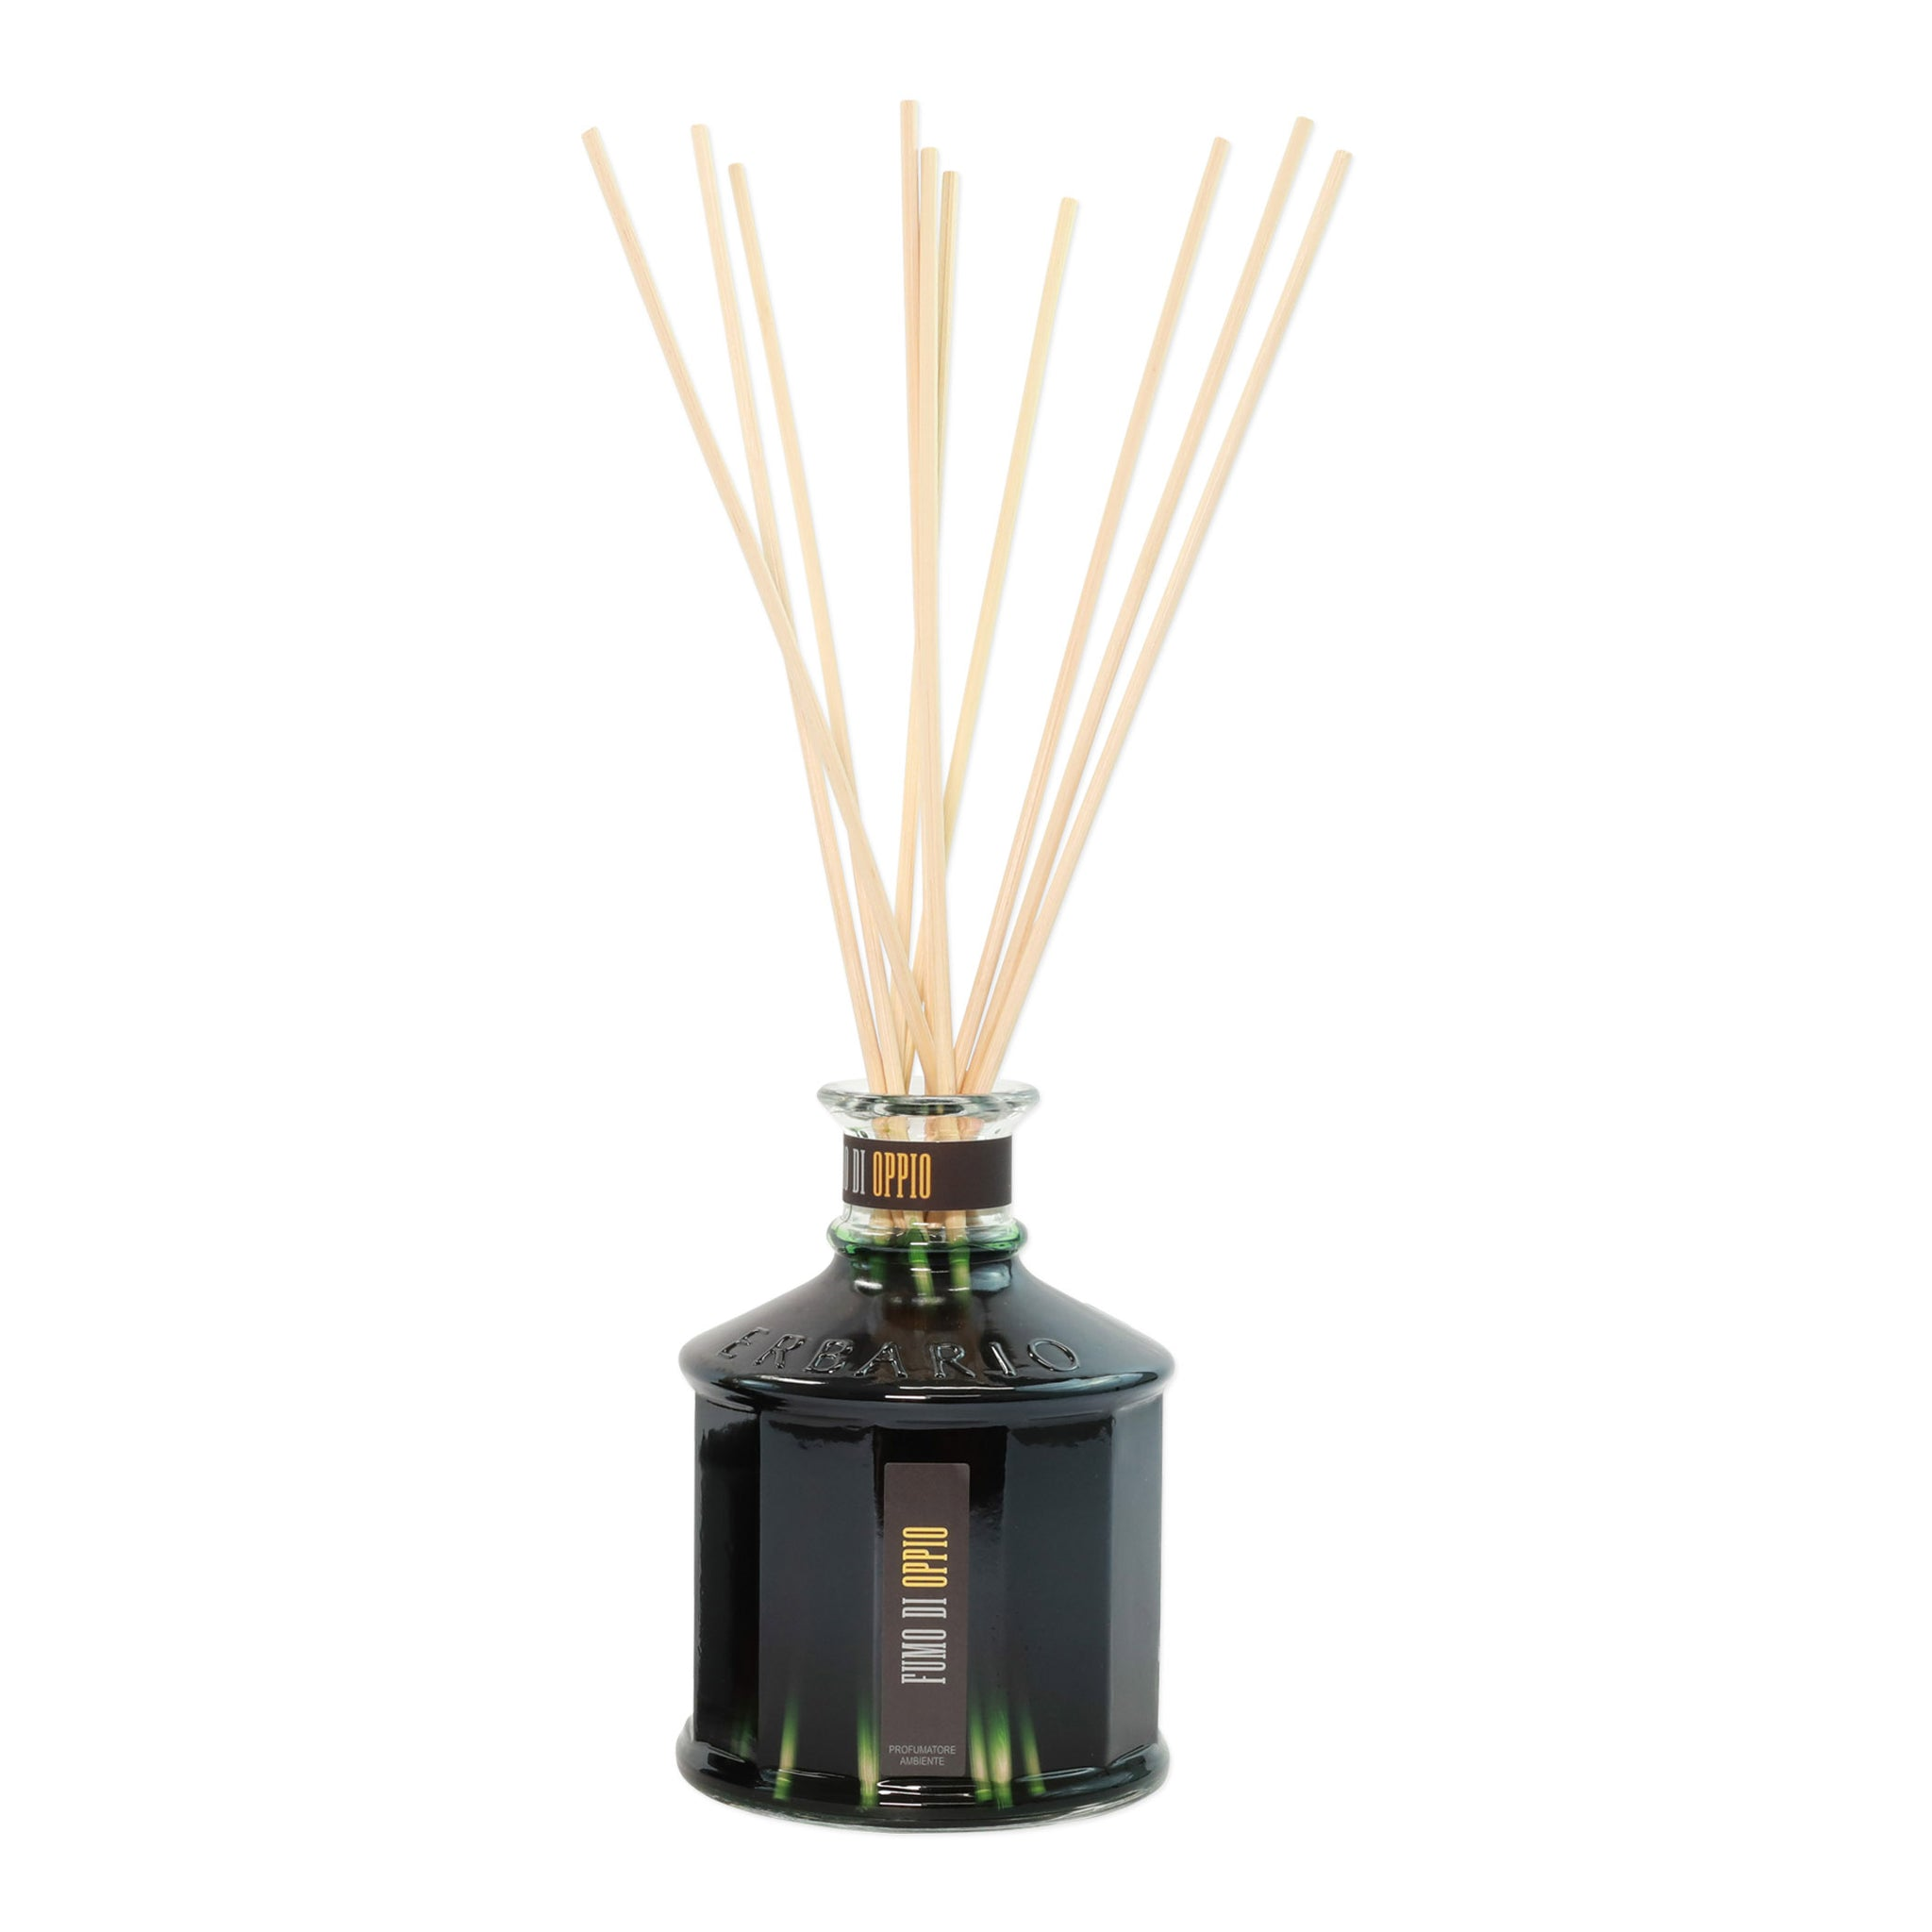 Fuomo di Oppio Diffuser - Erbario Toscano - Available in 3 Sizes